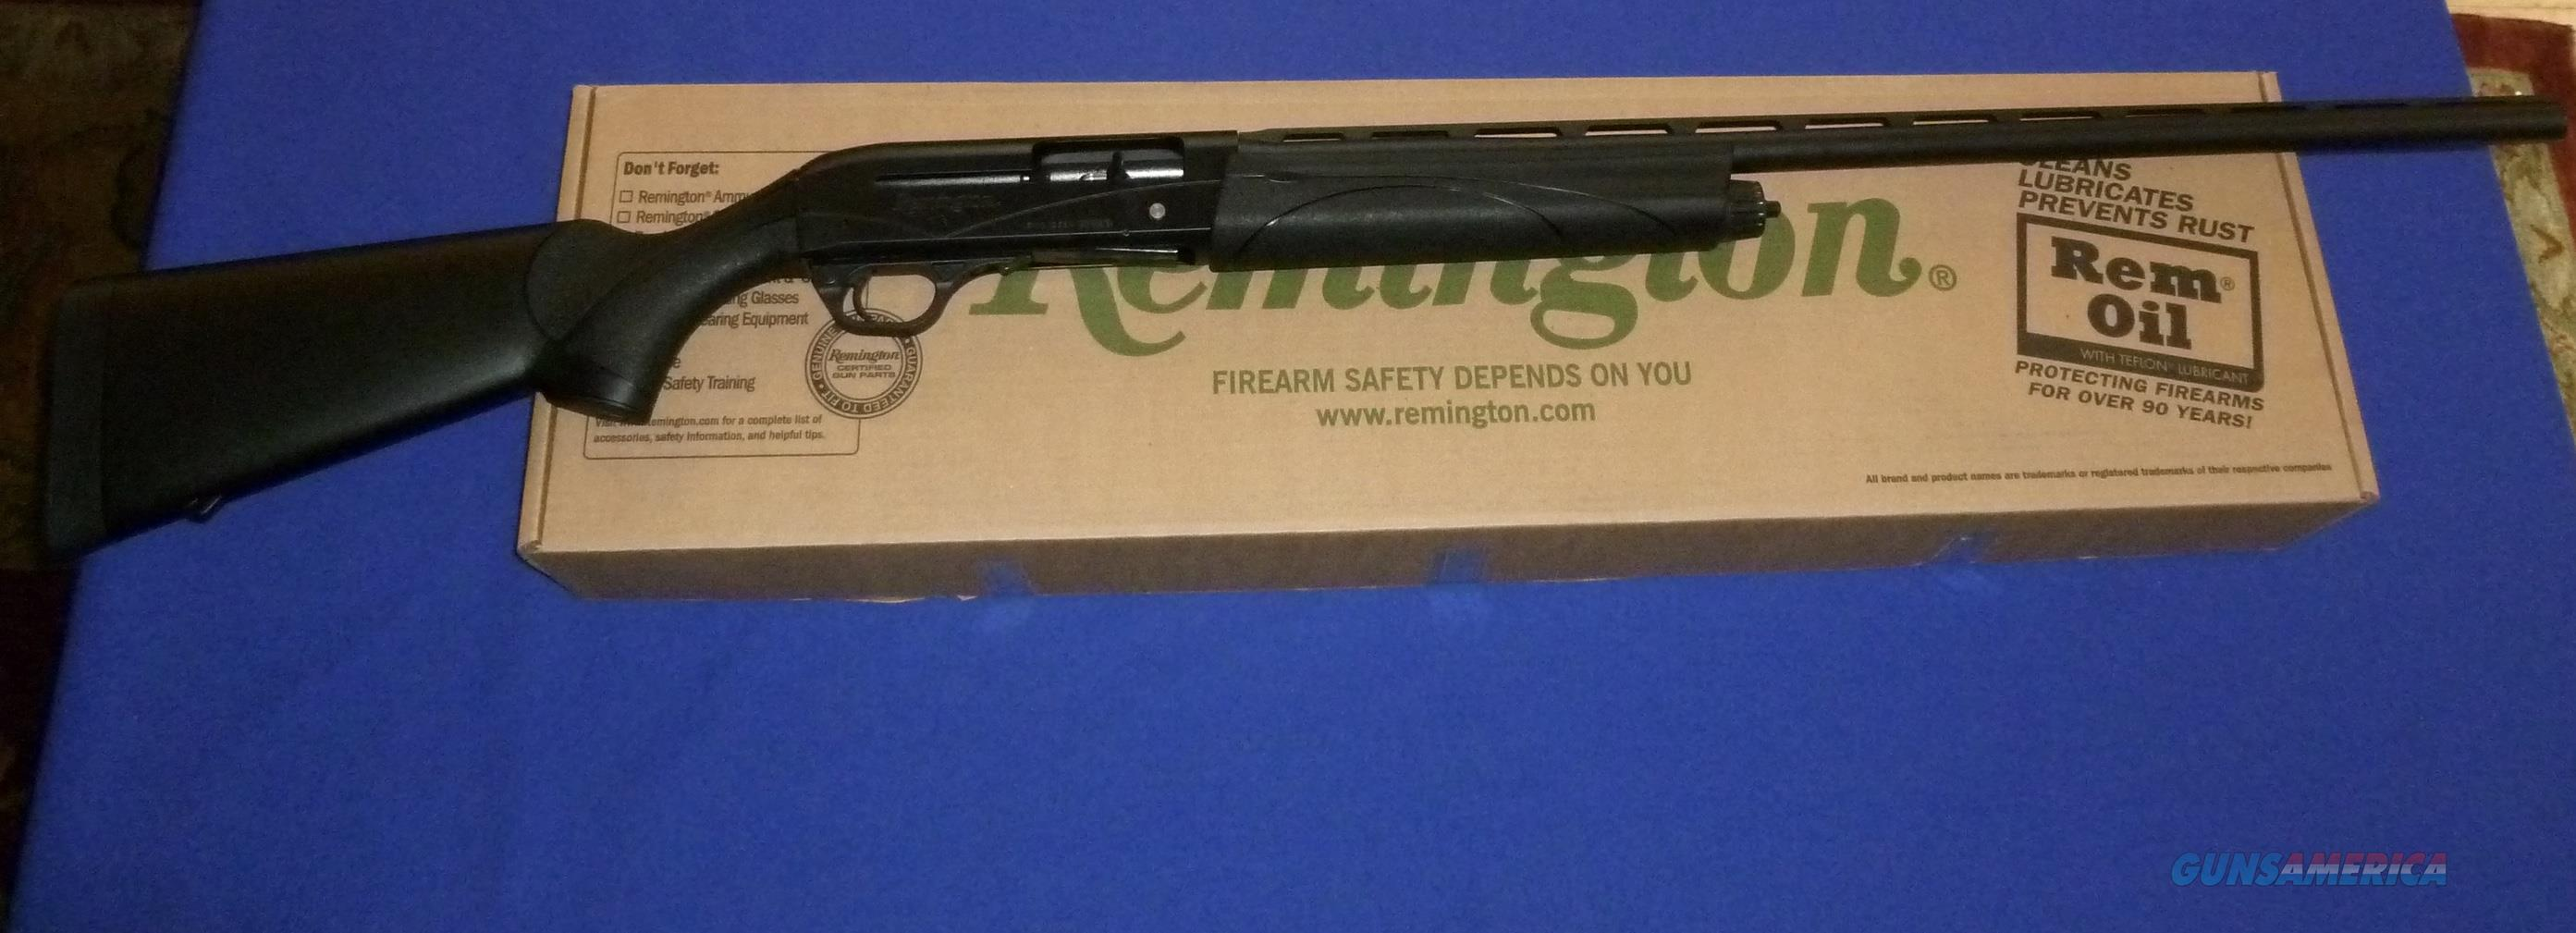 CLEARANCE PRICED!   REMINGTON V3 12 GAUGE SEMI-AUTO SHOTGUN NEW!  Guns > Shotguns > Remington Shotguns  > Autoloaders > Hunting